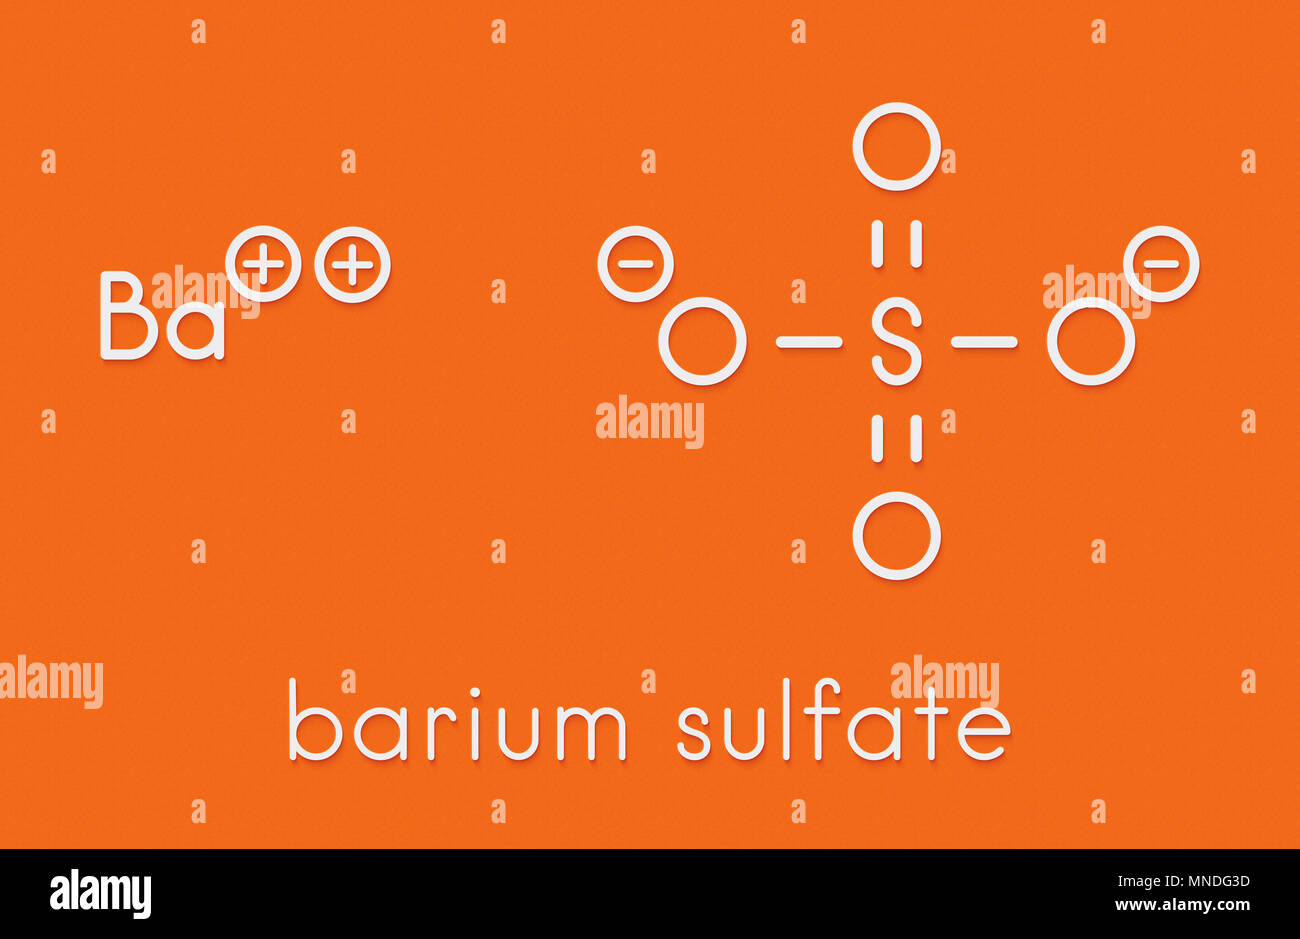 Barium sulfate (BaSO4). Used as paint pigment and radiocontrast agent. Skeletal formula. - Stock Image